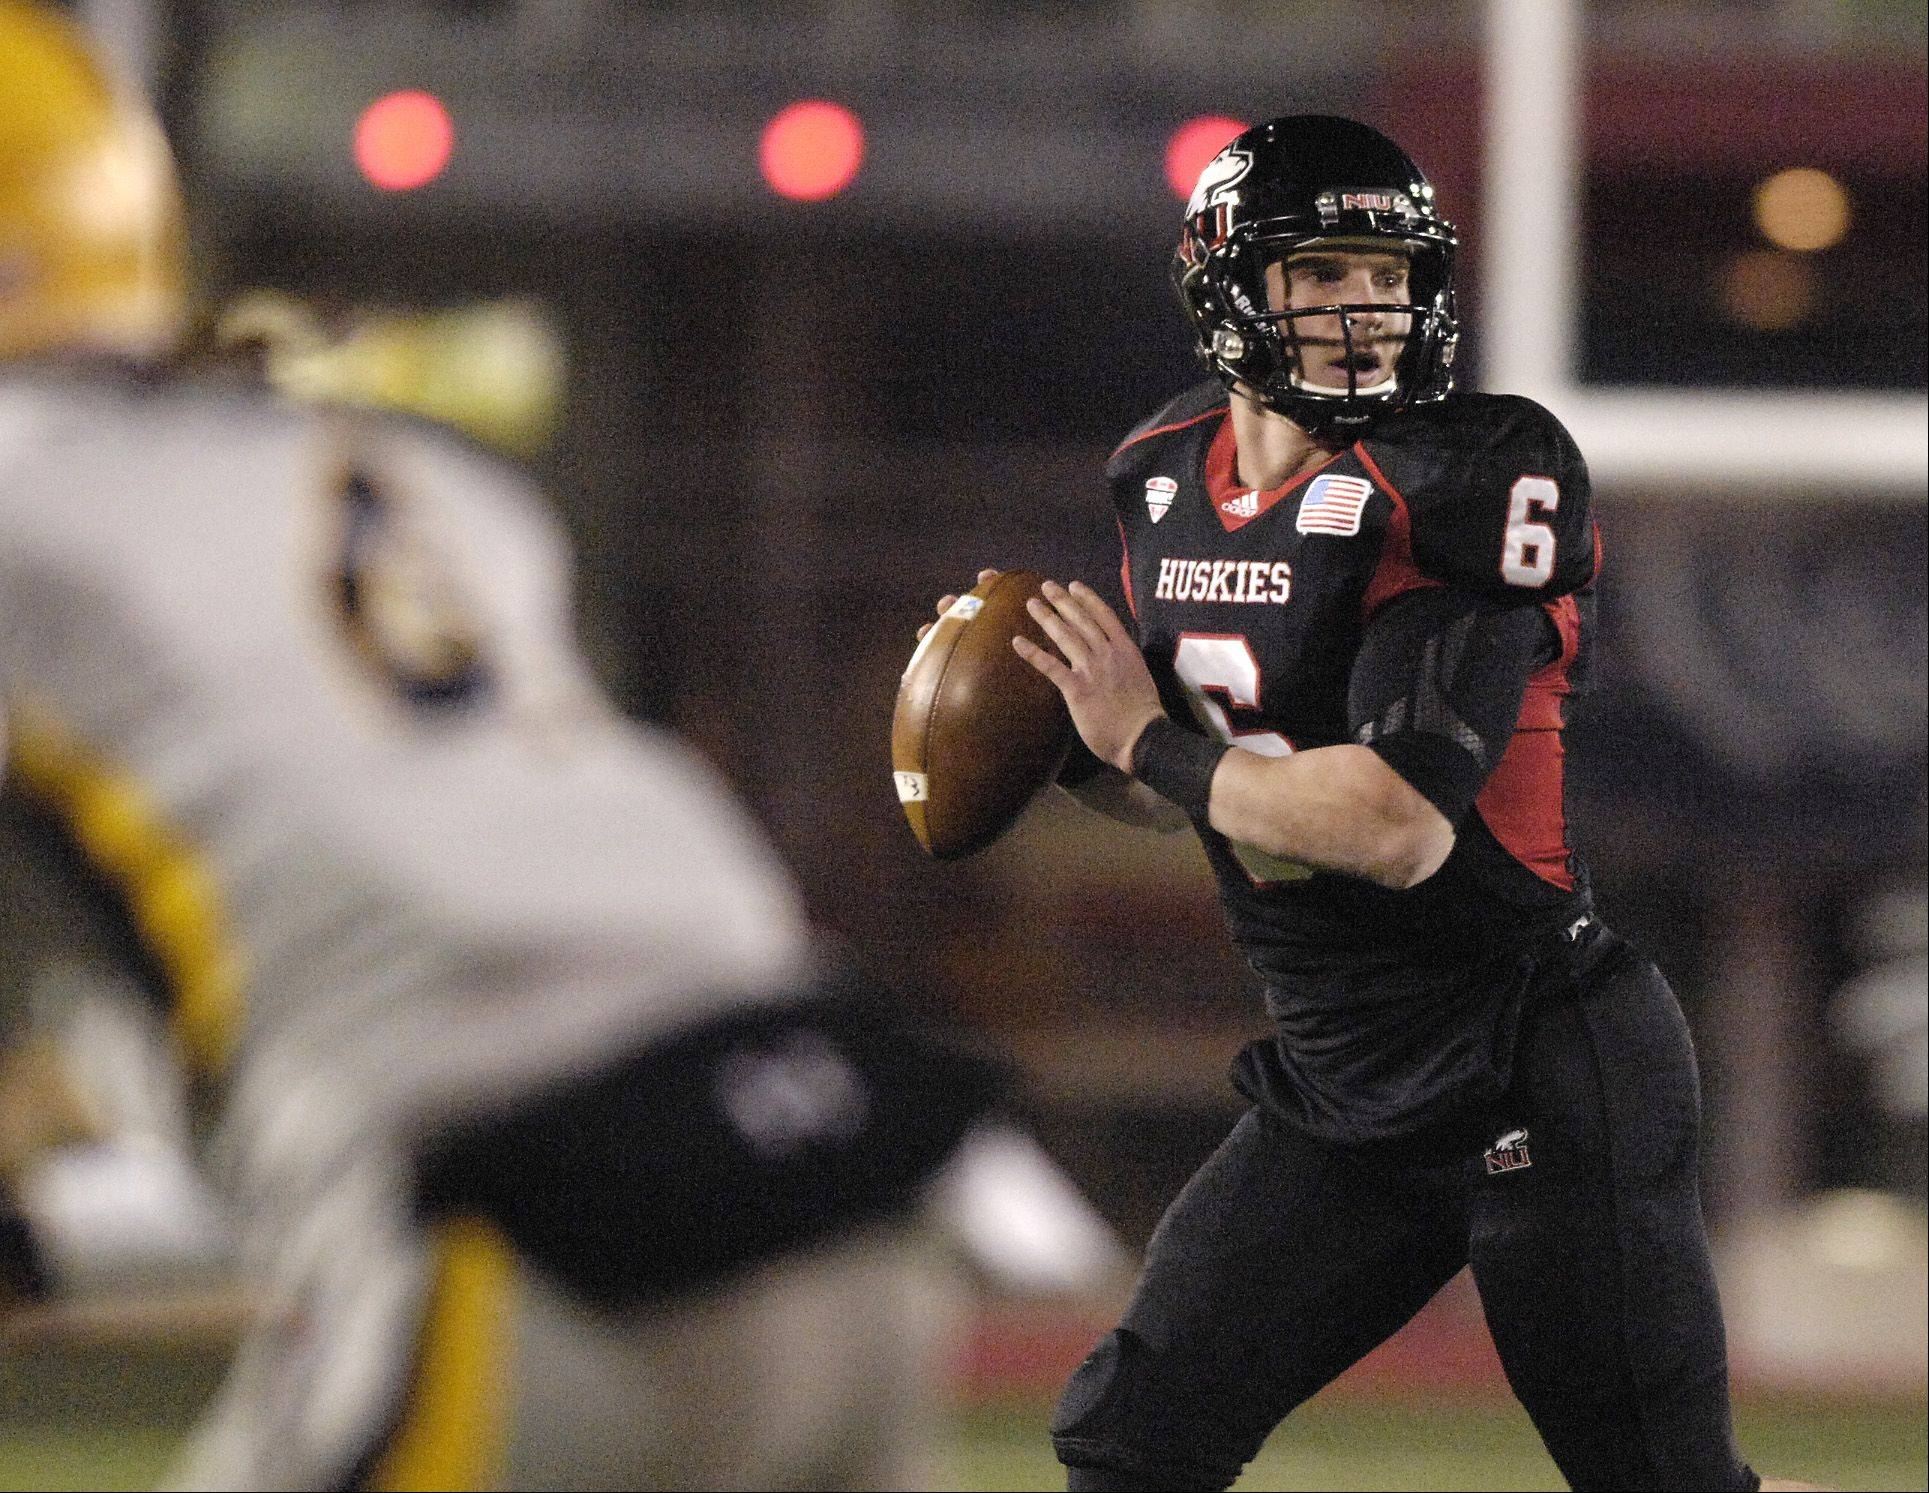 Last week Northern Illinois University quarterback Jordan Lynch threw for 407 yards against Toledo and ran for 162 yards. He needs just 199 rushing yards to break the single season mark by Michigan's Denard Robinson.